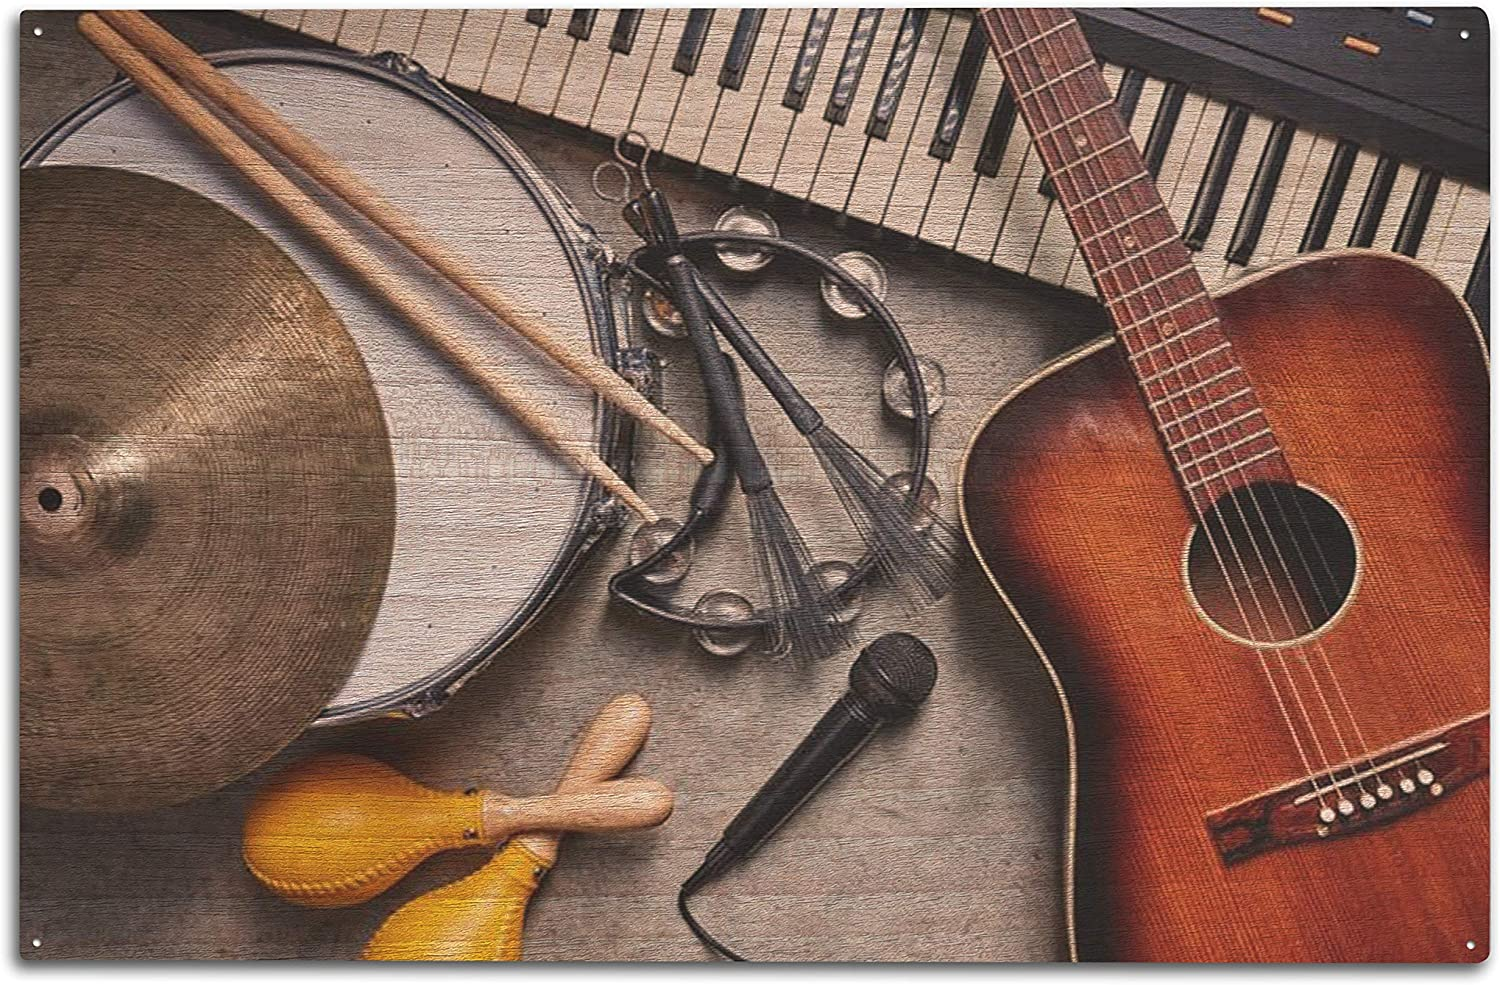 Lantern Press Group of Year-end annual account OFFicial store Musical D Instruments a Guitar Including